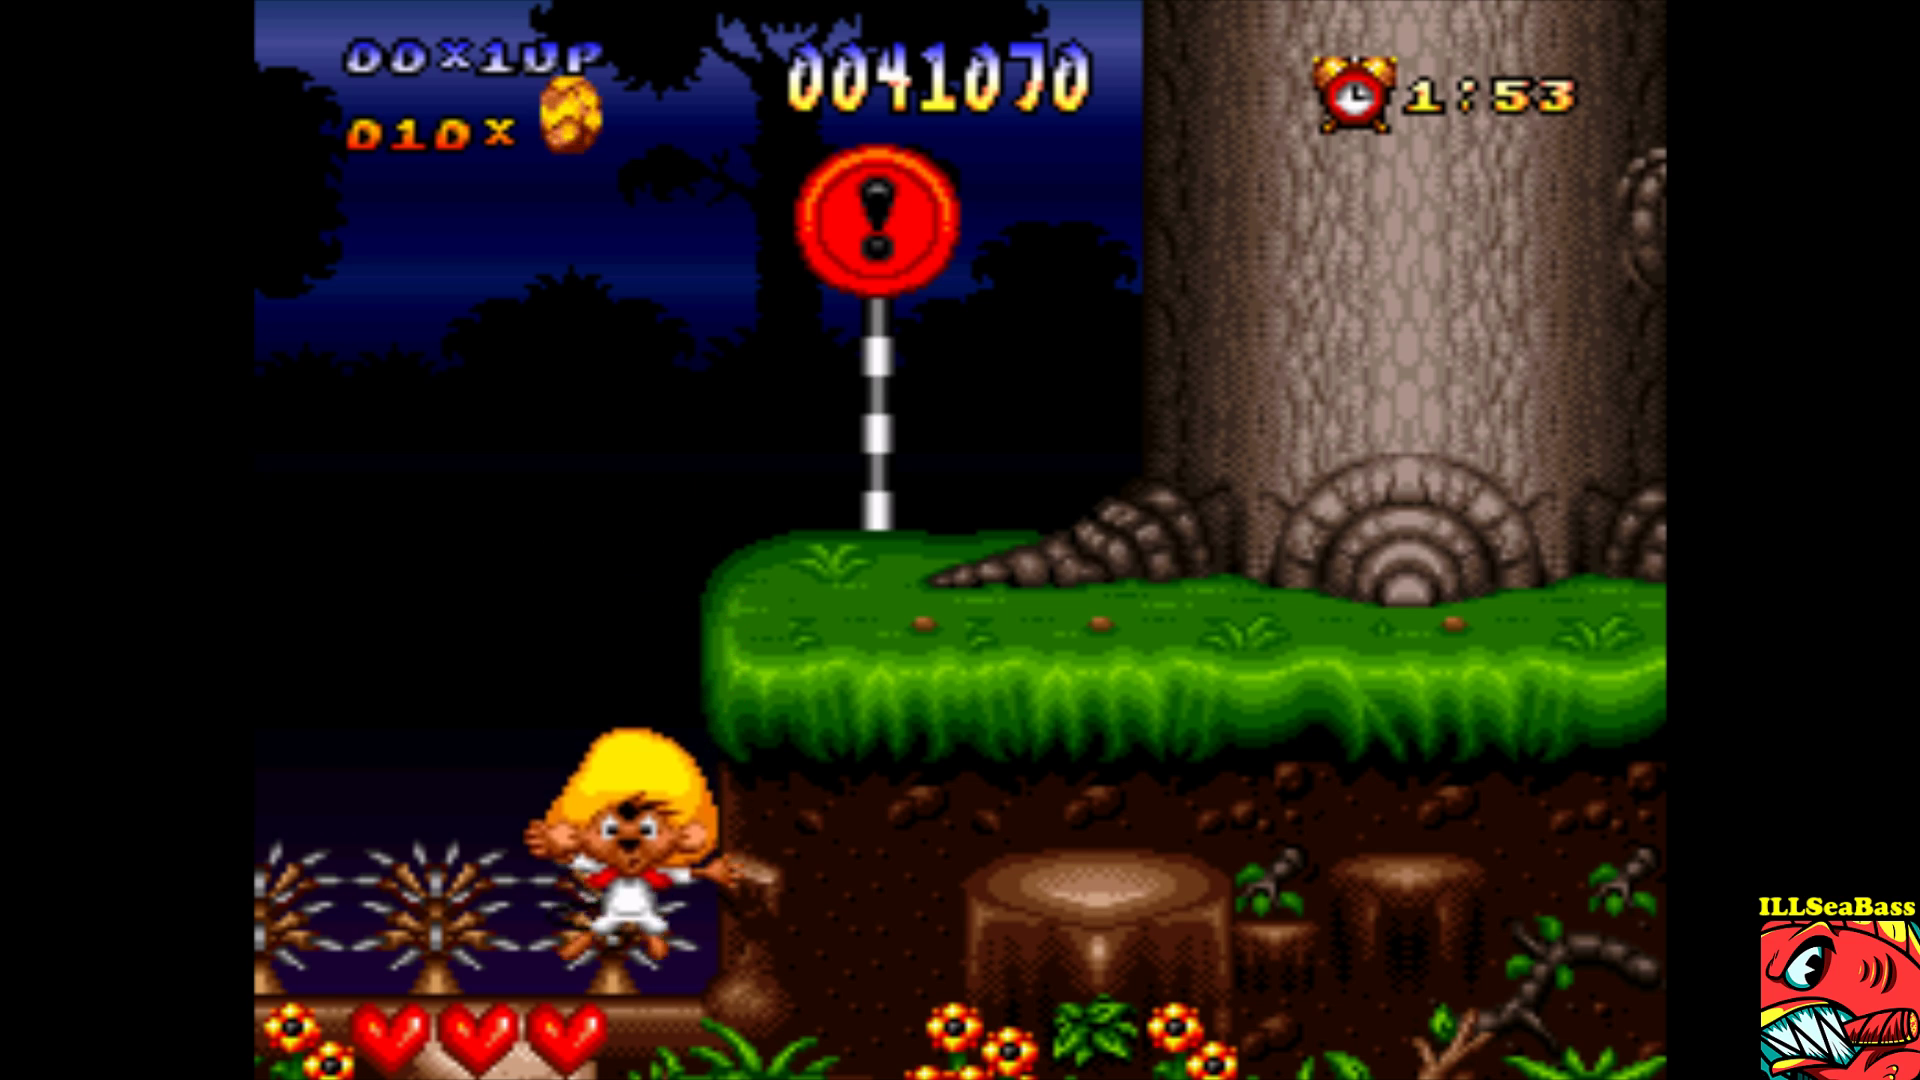 ILLSeaBass: Speedy Gonzales in Los Gatos Bandidos (SNES/Super Famicom Emulated) 41,070 points on 2017-09-16 23:52:18